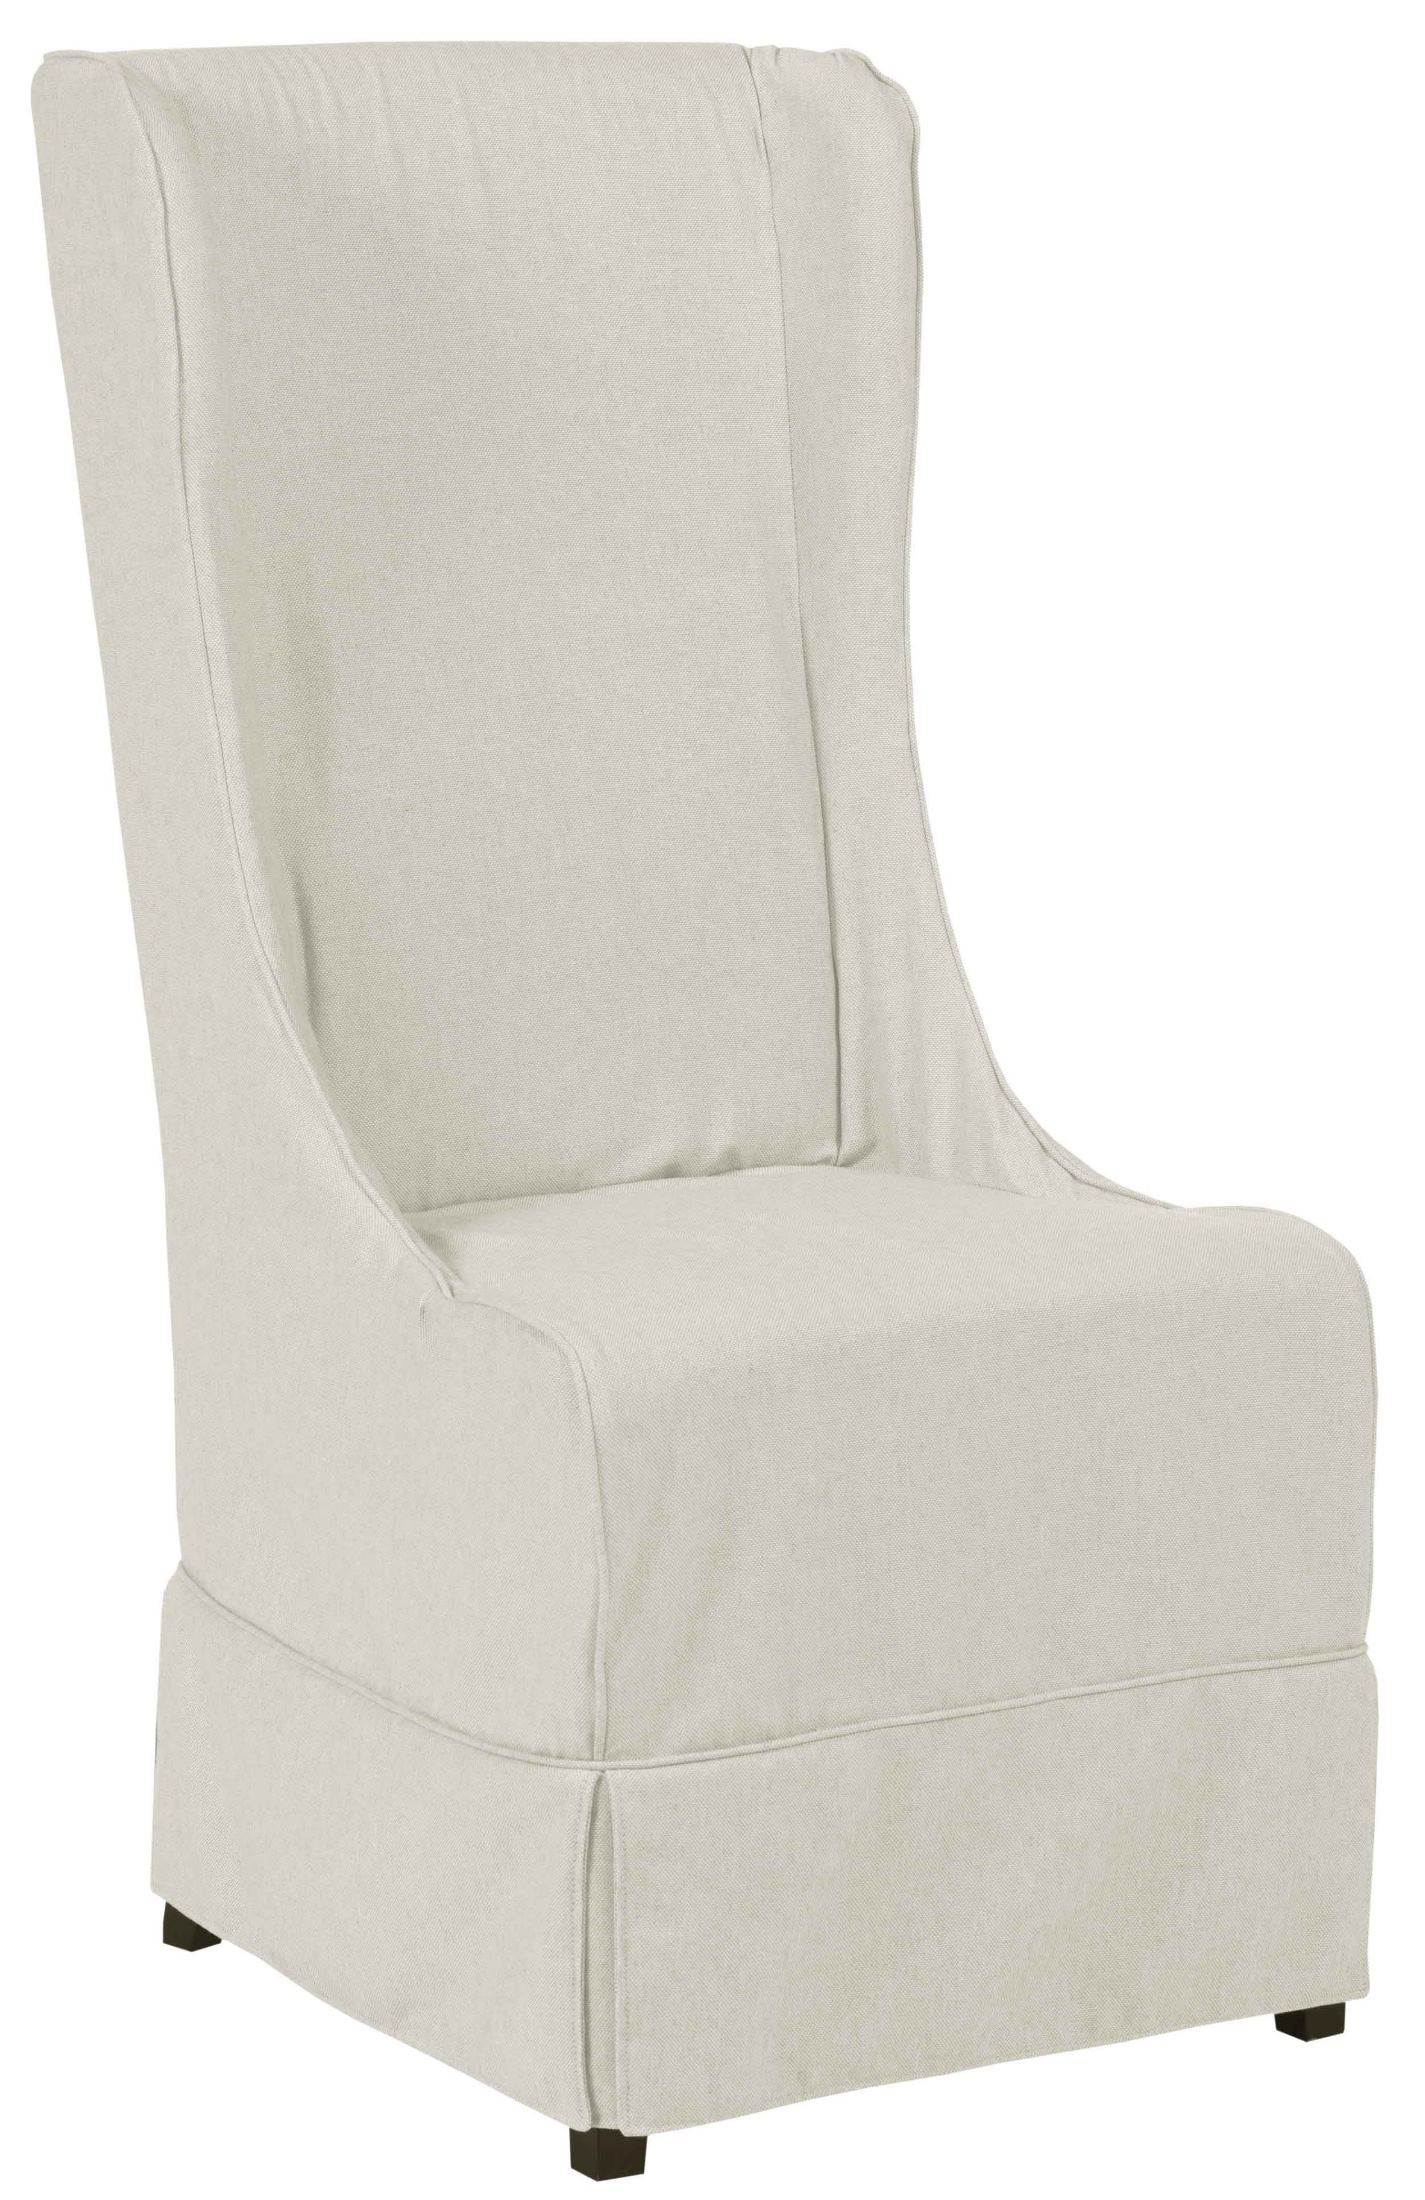 Artisans Shoppe Upholstered Hostess Chair from Kincaid (90-2399) : Coleman Furniture